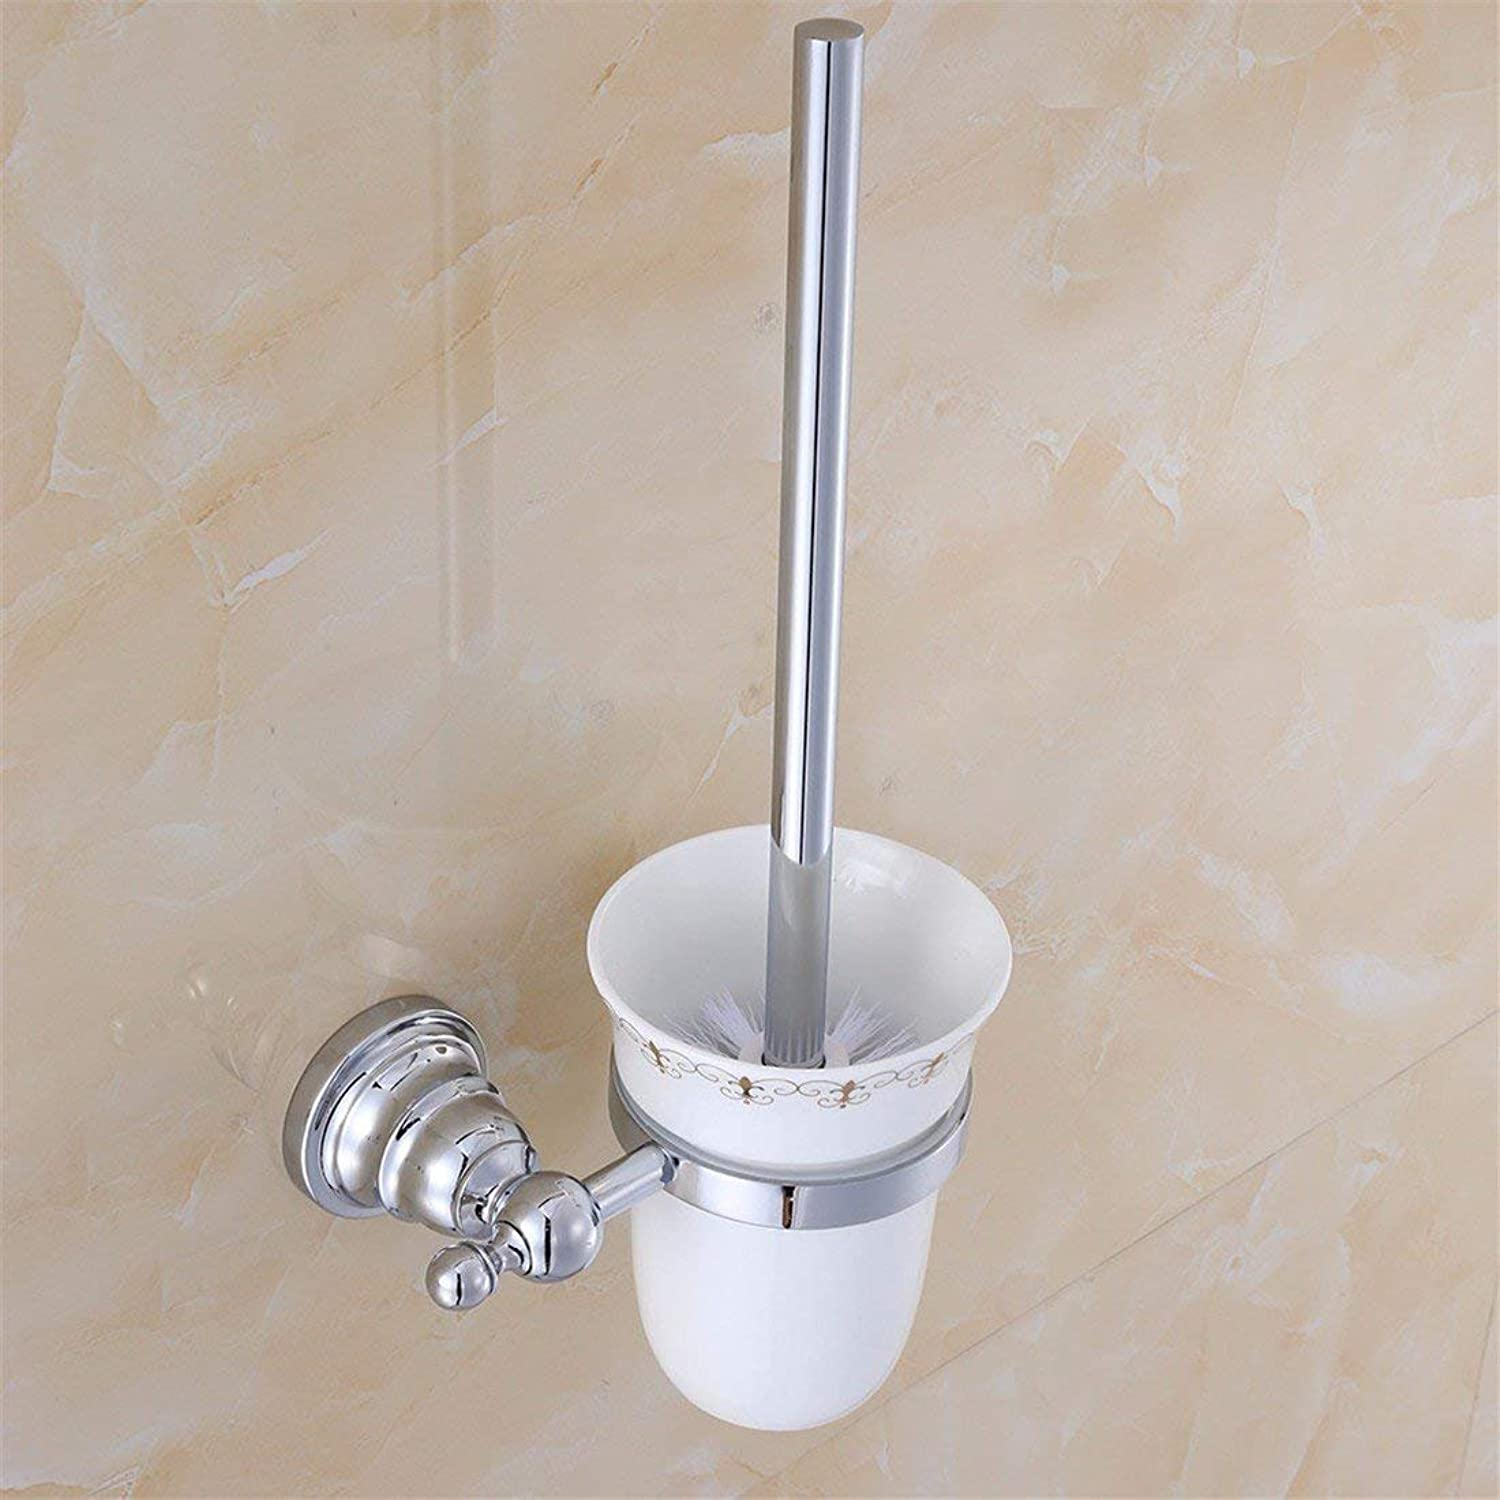 Contemporary of The Chromed zinc Alloy Bathroom, wc, Toothbrush Rack Brush Cup Chassis,Toilet Brush